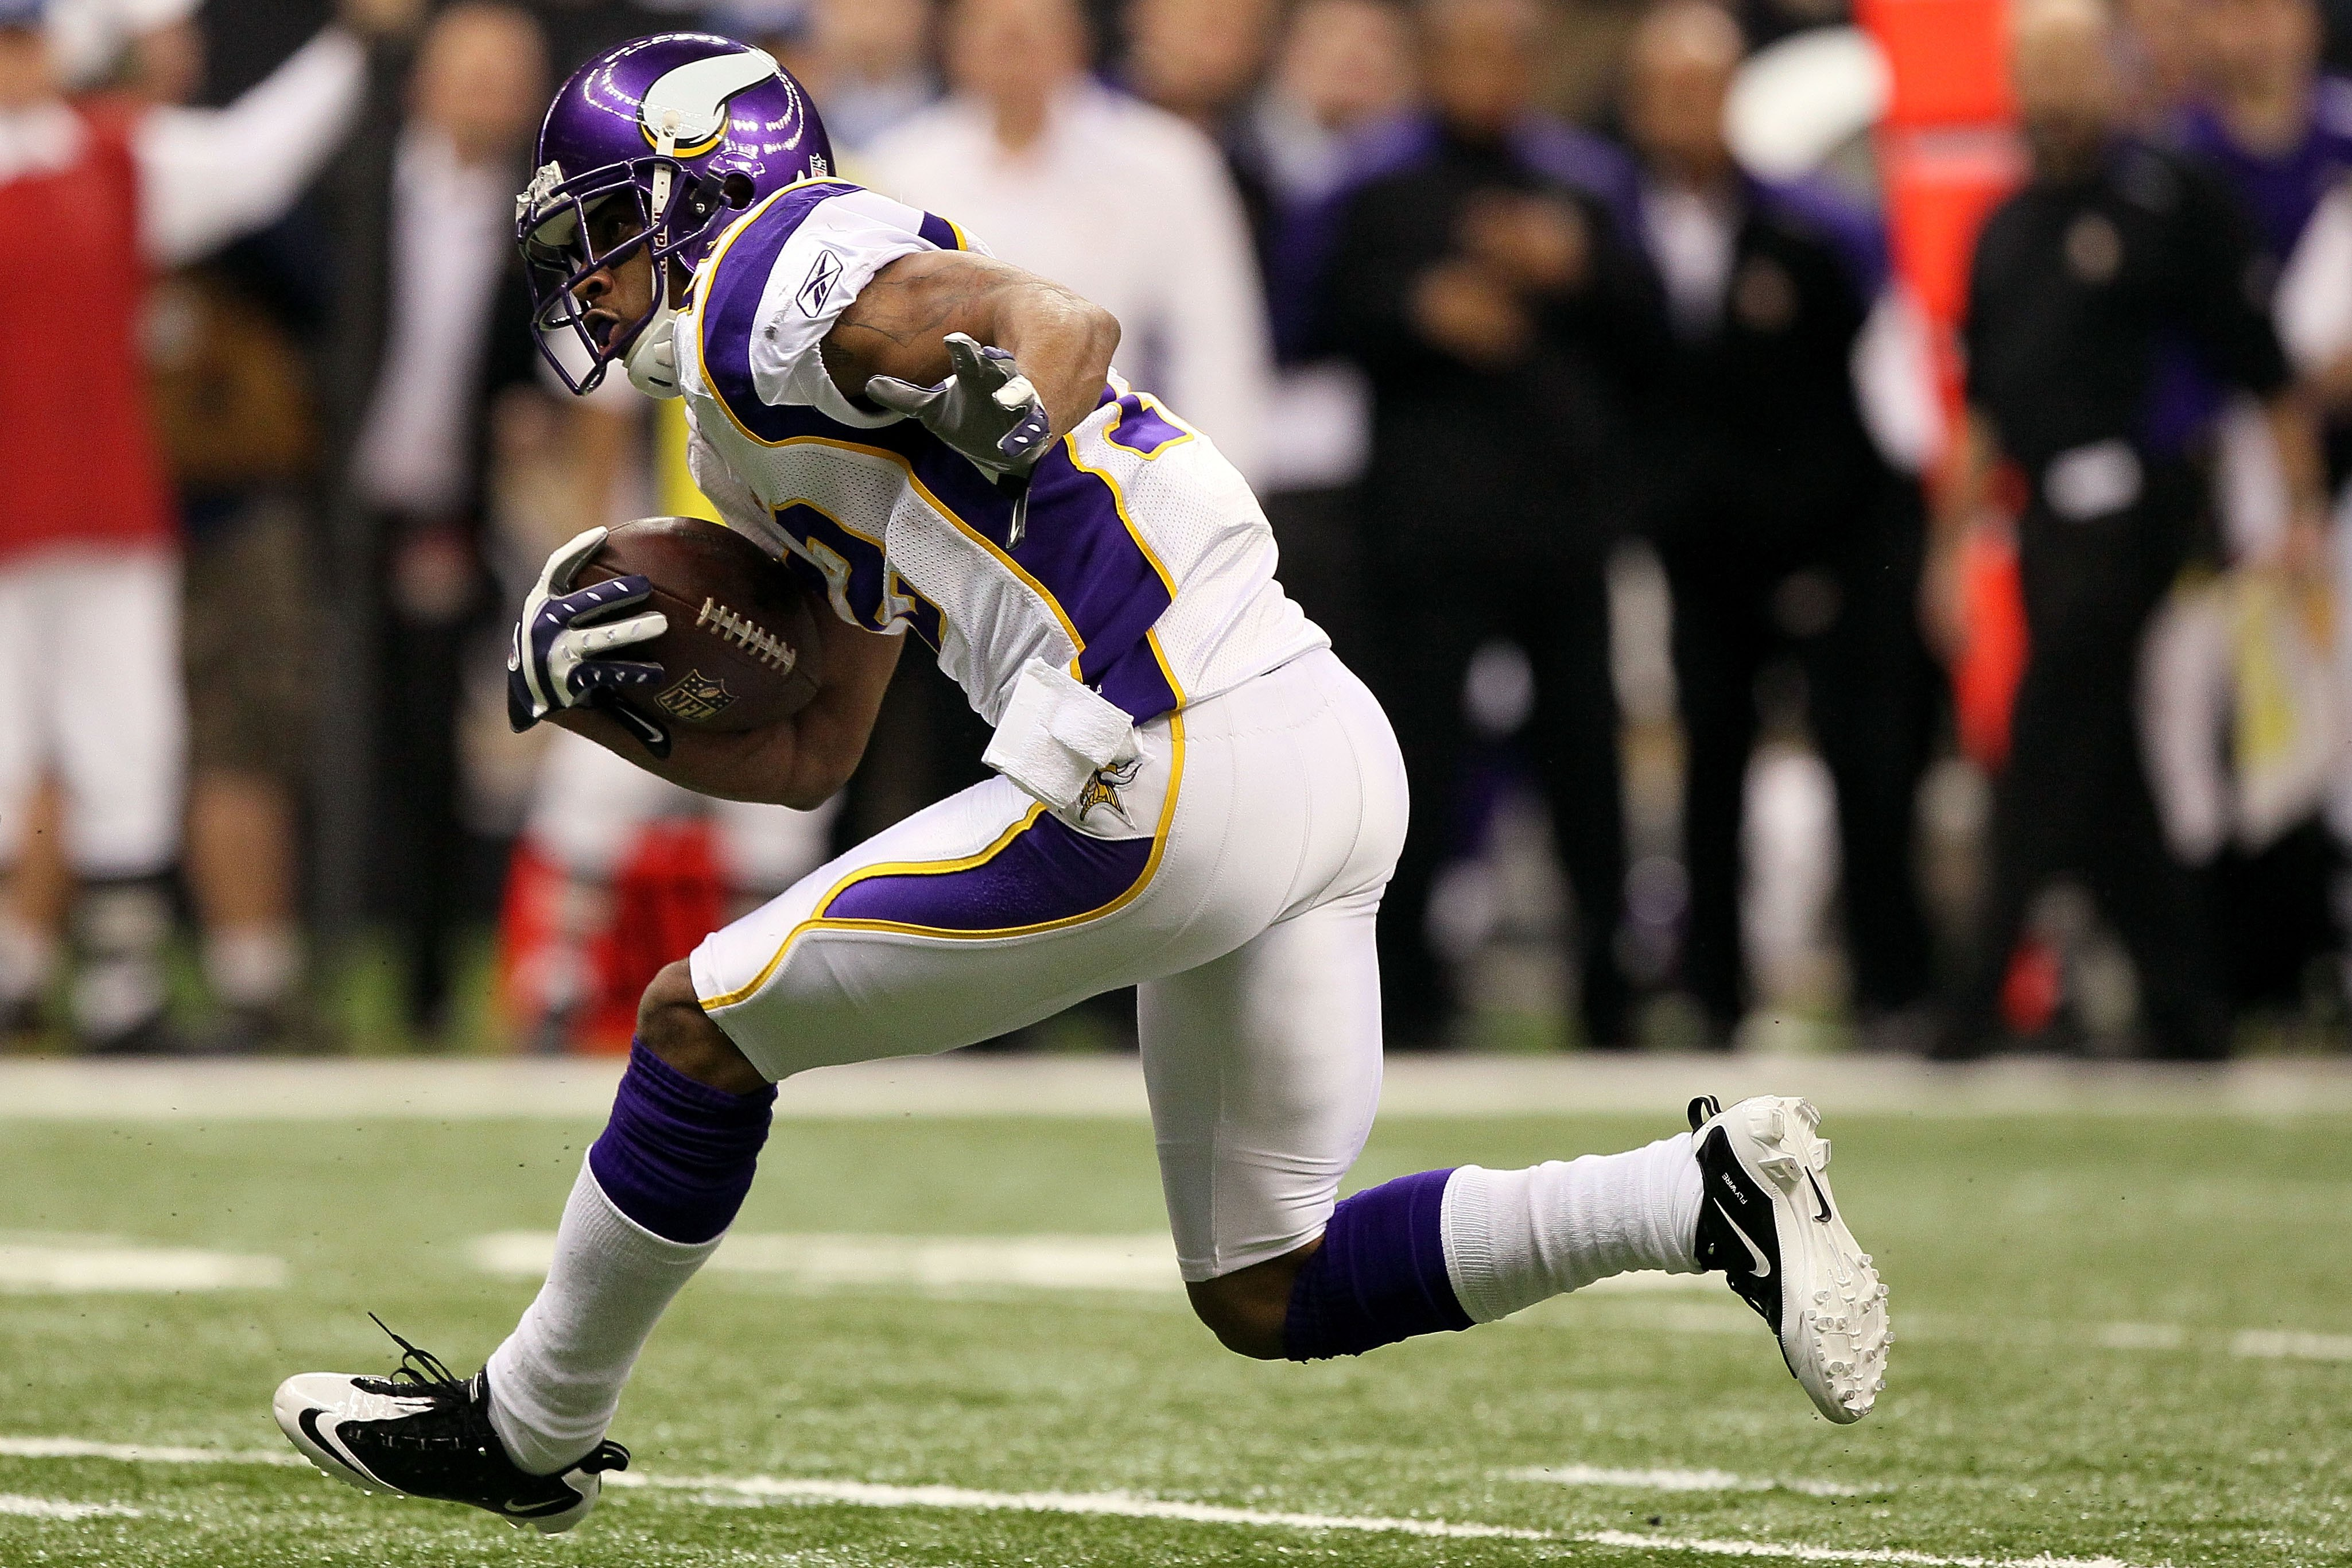 NEW ORLEANS - JANUARY 24:  Percy Harvin #12 of the Minnesota Vikings returns a punt against the New Orleans Saints during the NFC Championship Game at the Louisiana Superdome on January 24, 2010 in New Orleans, Louisiana. The Saints won 31-28 in overtime.